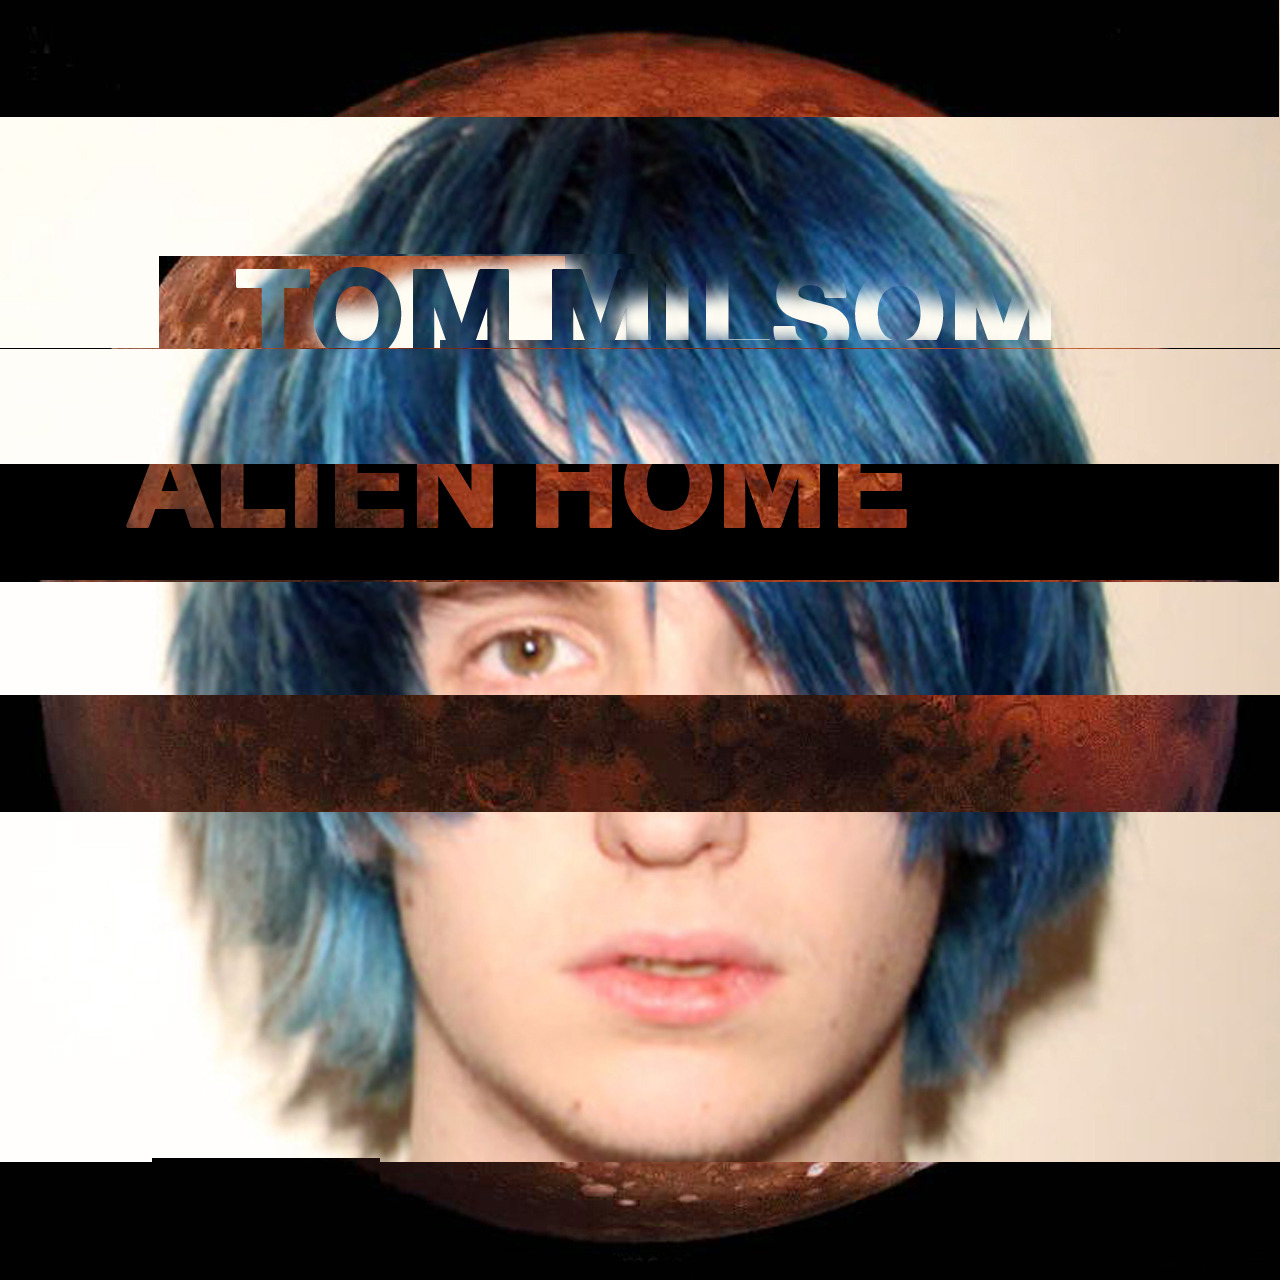 "Alright, here we freakin' go!!!!!!!!!!!! Alien Home is a collection of songs and field recordings made in 2011 and 2012, and on the whole it gives a fairly comprehensive picture of my life over these two years I've taken a path through pop music and via a whole psychedelic kaleidoscope of sounds and at some point I'll be able to come out of this journey and put together a cohesive musical statement (probably Organs) Alien Home is about the journey I'm undertaking to get there It starts with music I feel comfortable making, and that I feel like I know how to do, and it ends up in a wilderness I'm still on my way to figuring out what's next, and it's a confusing and scary process for me, but click on the album cover above and you can join me, which will hopefully prepare you for Organs cause that shit's gonna be cray-cray This shit cray-cray too ""Alien Home also cray-cray"" reports say Tom xx"